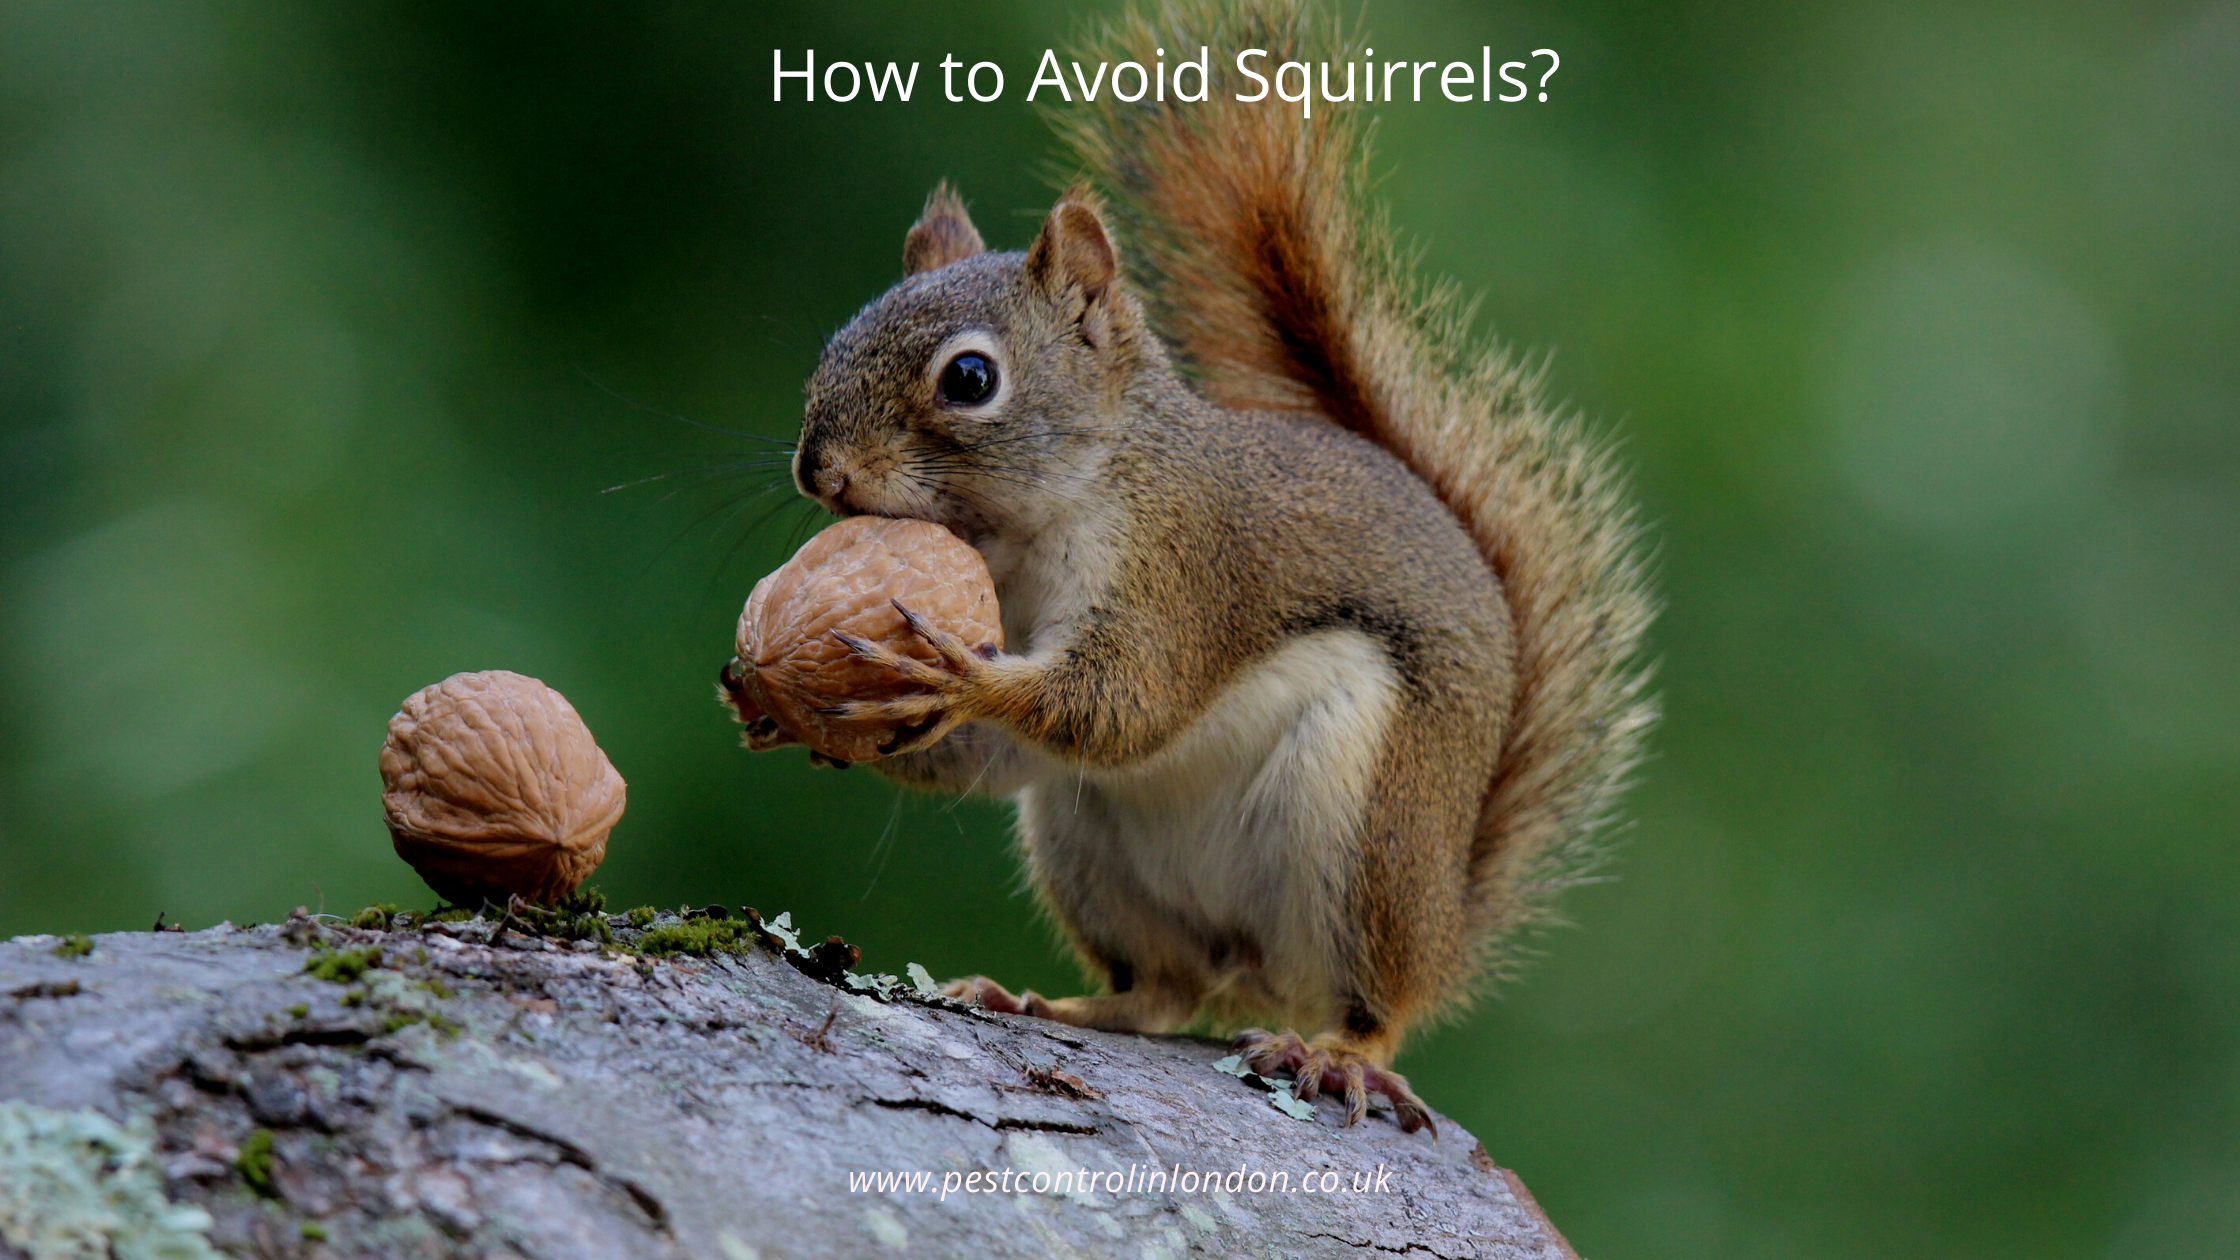 How to Avoid Squirrels